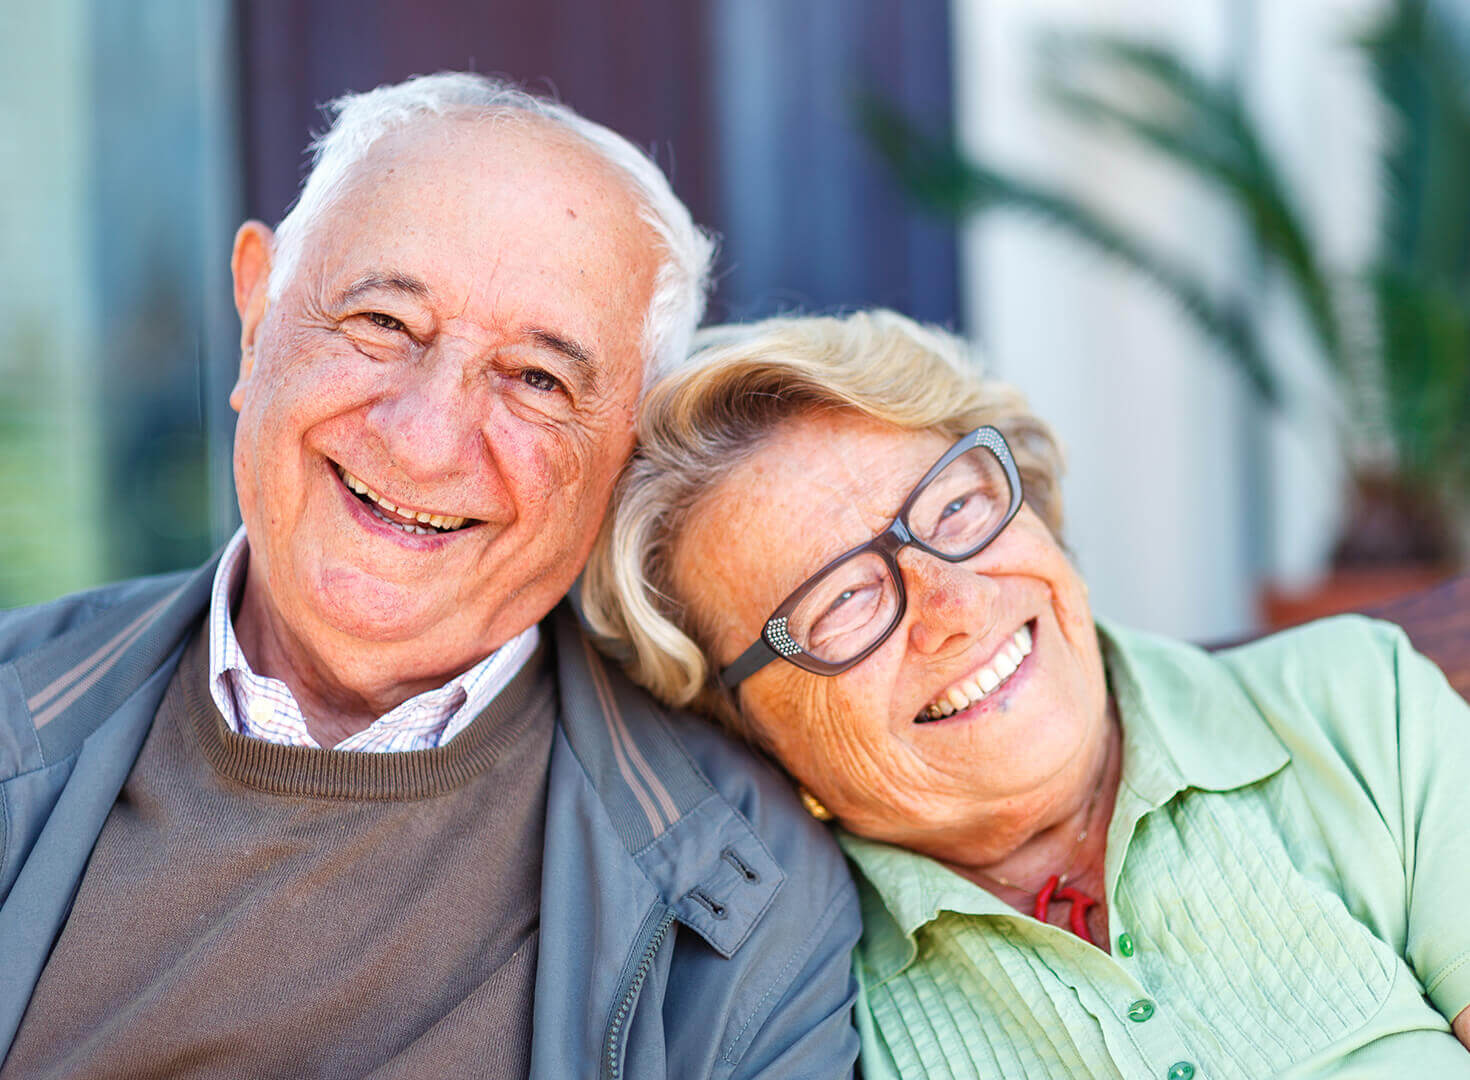 Senior couple smiling, leaning heads against one another happy